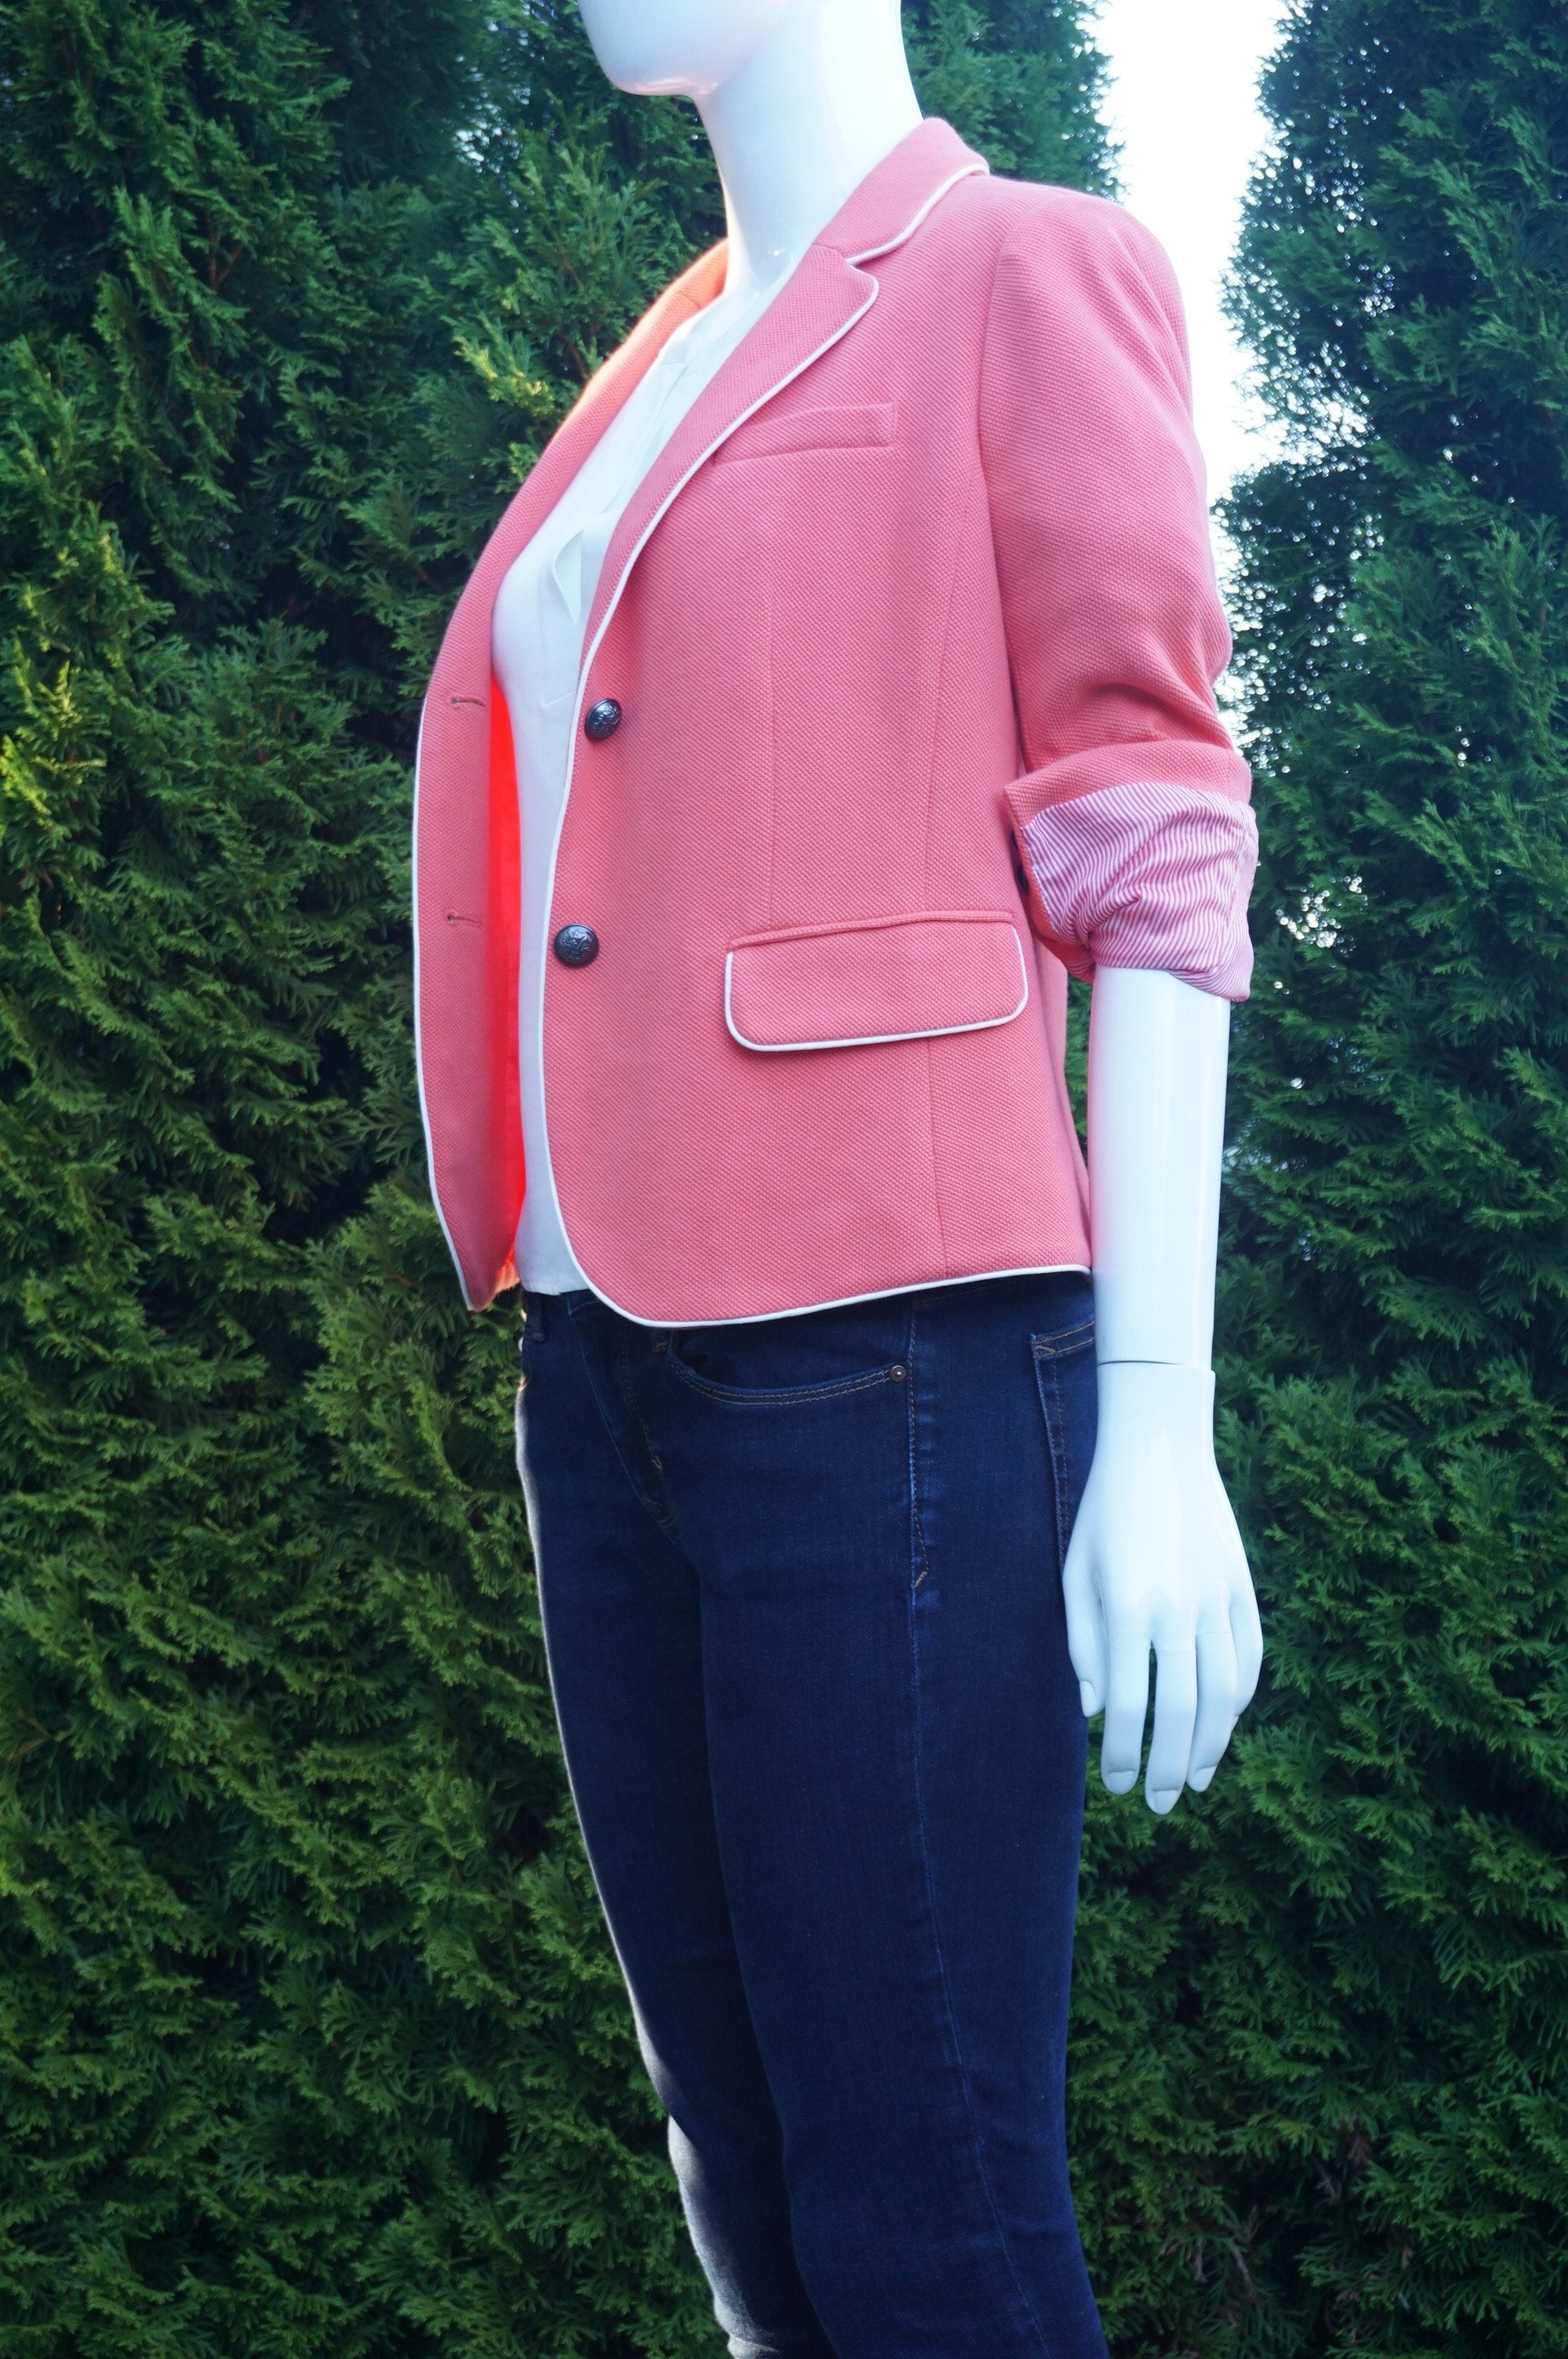 Gap Petite Pink Cotton Suit Jacket, Chic professional suit Jacket. 4 Petite. Shoulder to Shoulder 15 inches. Breast 34 inches, length 24 inches, Pink, women's Jackets & Coats, women's Pink Jackets & Coats, Gap Petite women's Jackets & Coats, pink jacket, pink suit, pink blazer